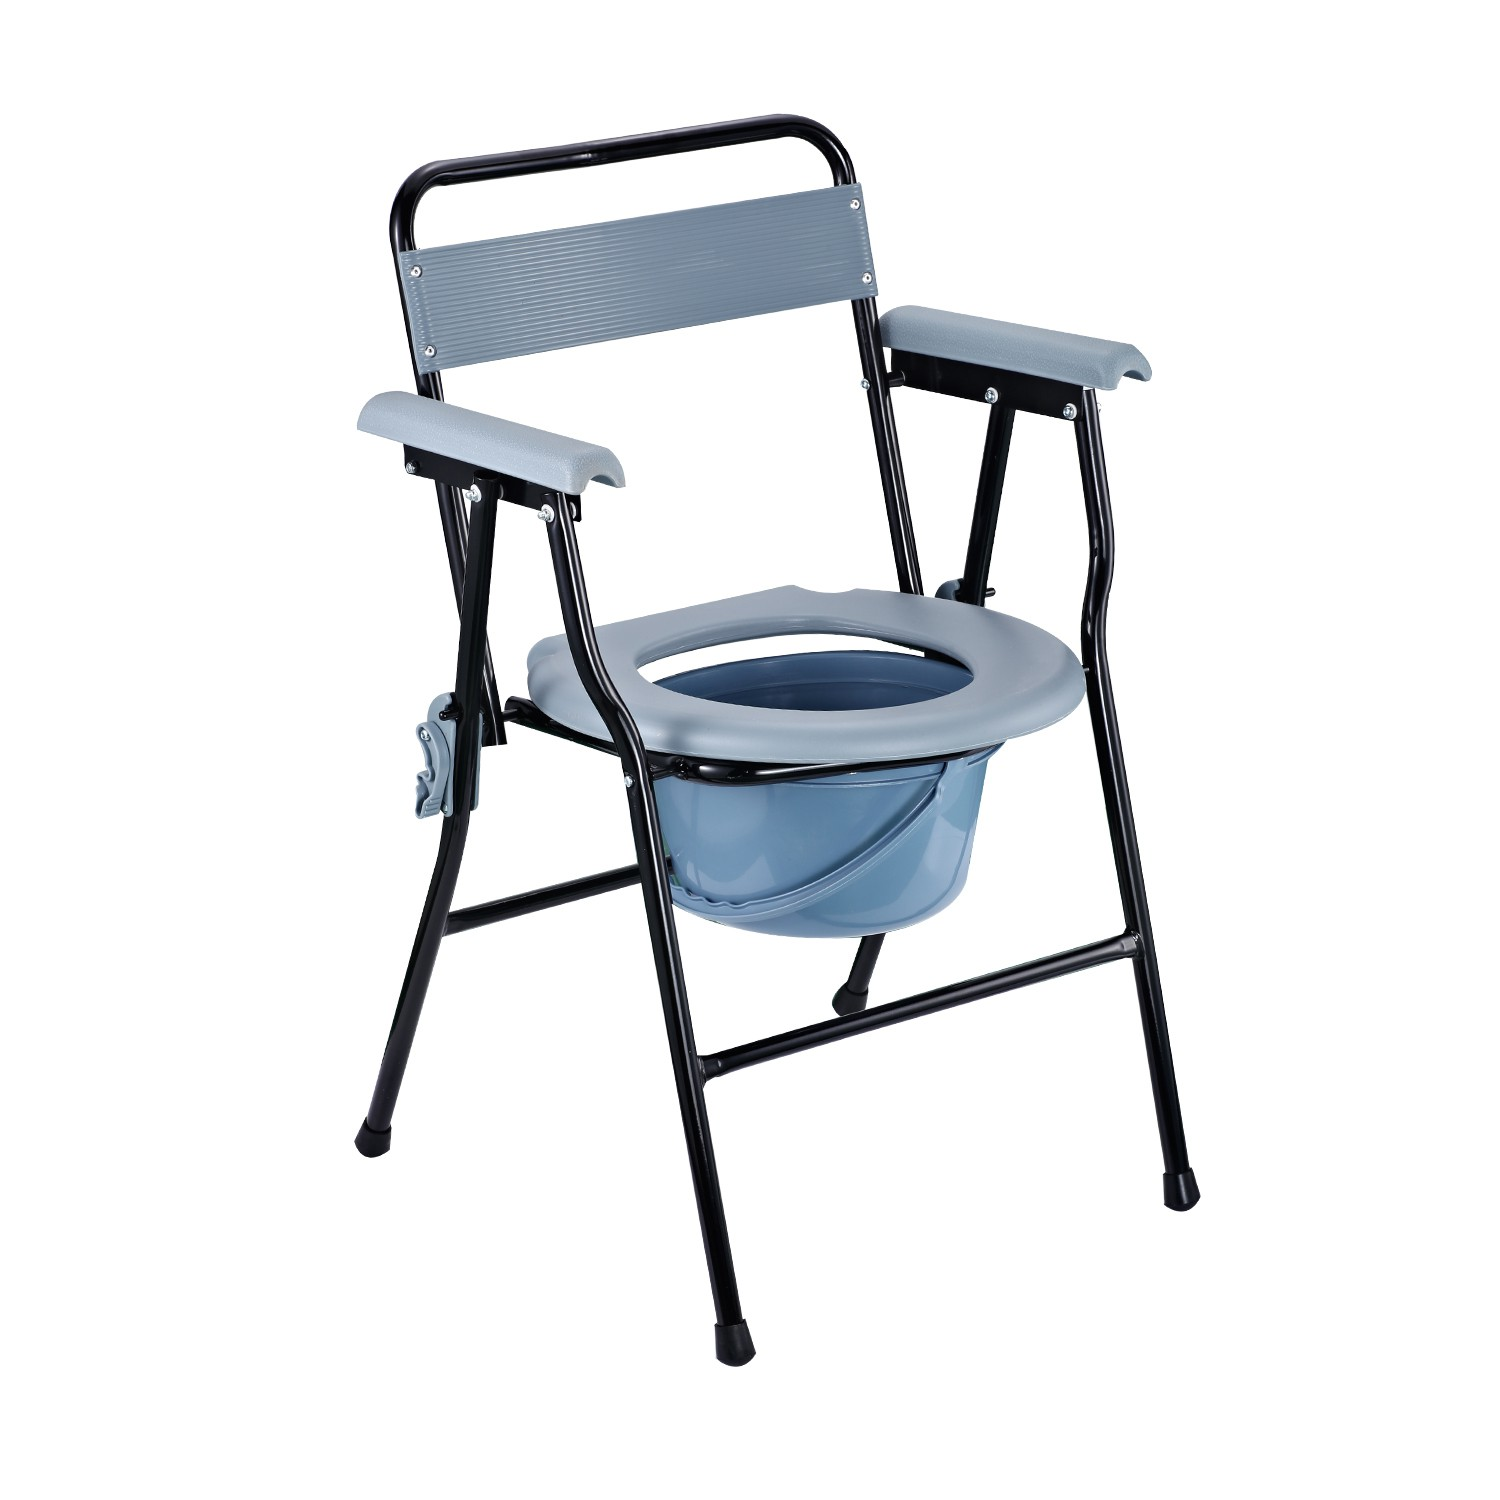 Folding Commode Chair Foldable Commode Chair Available At Orthodynamic Ltd